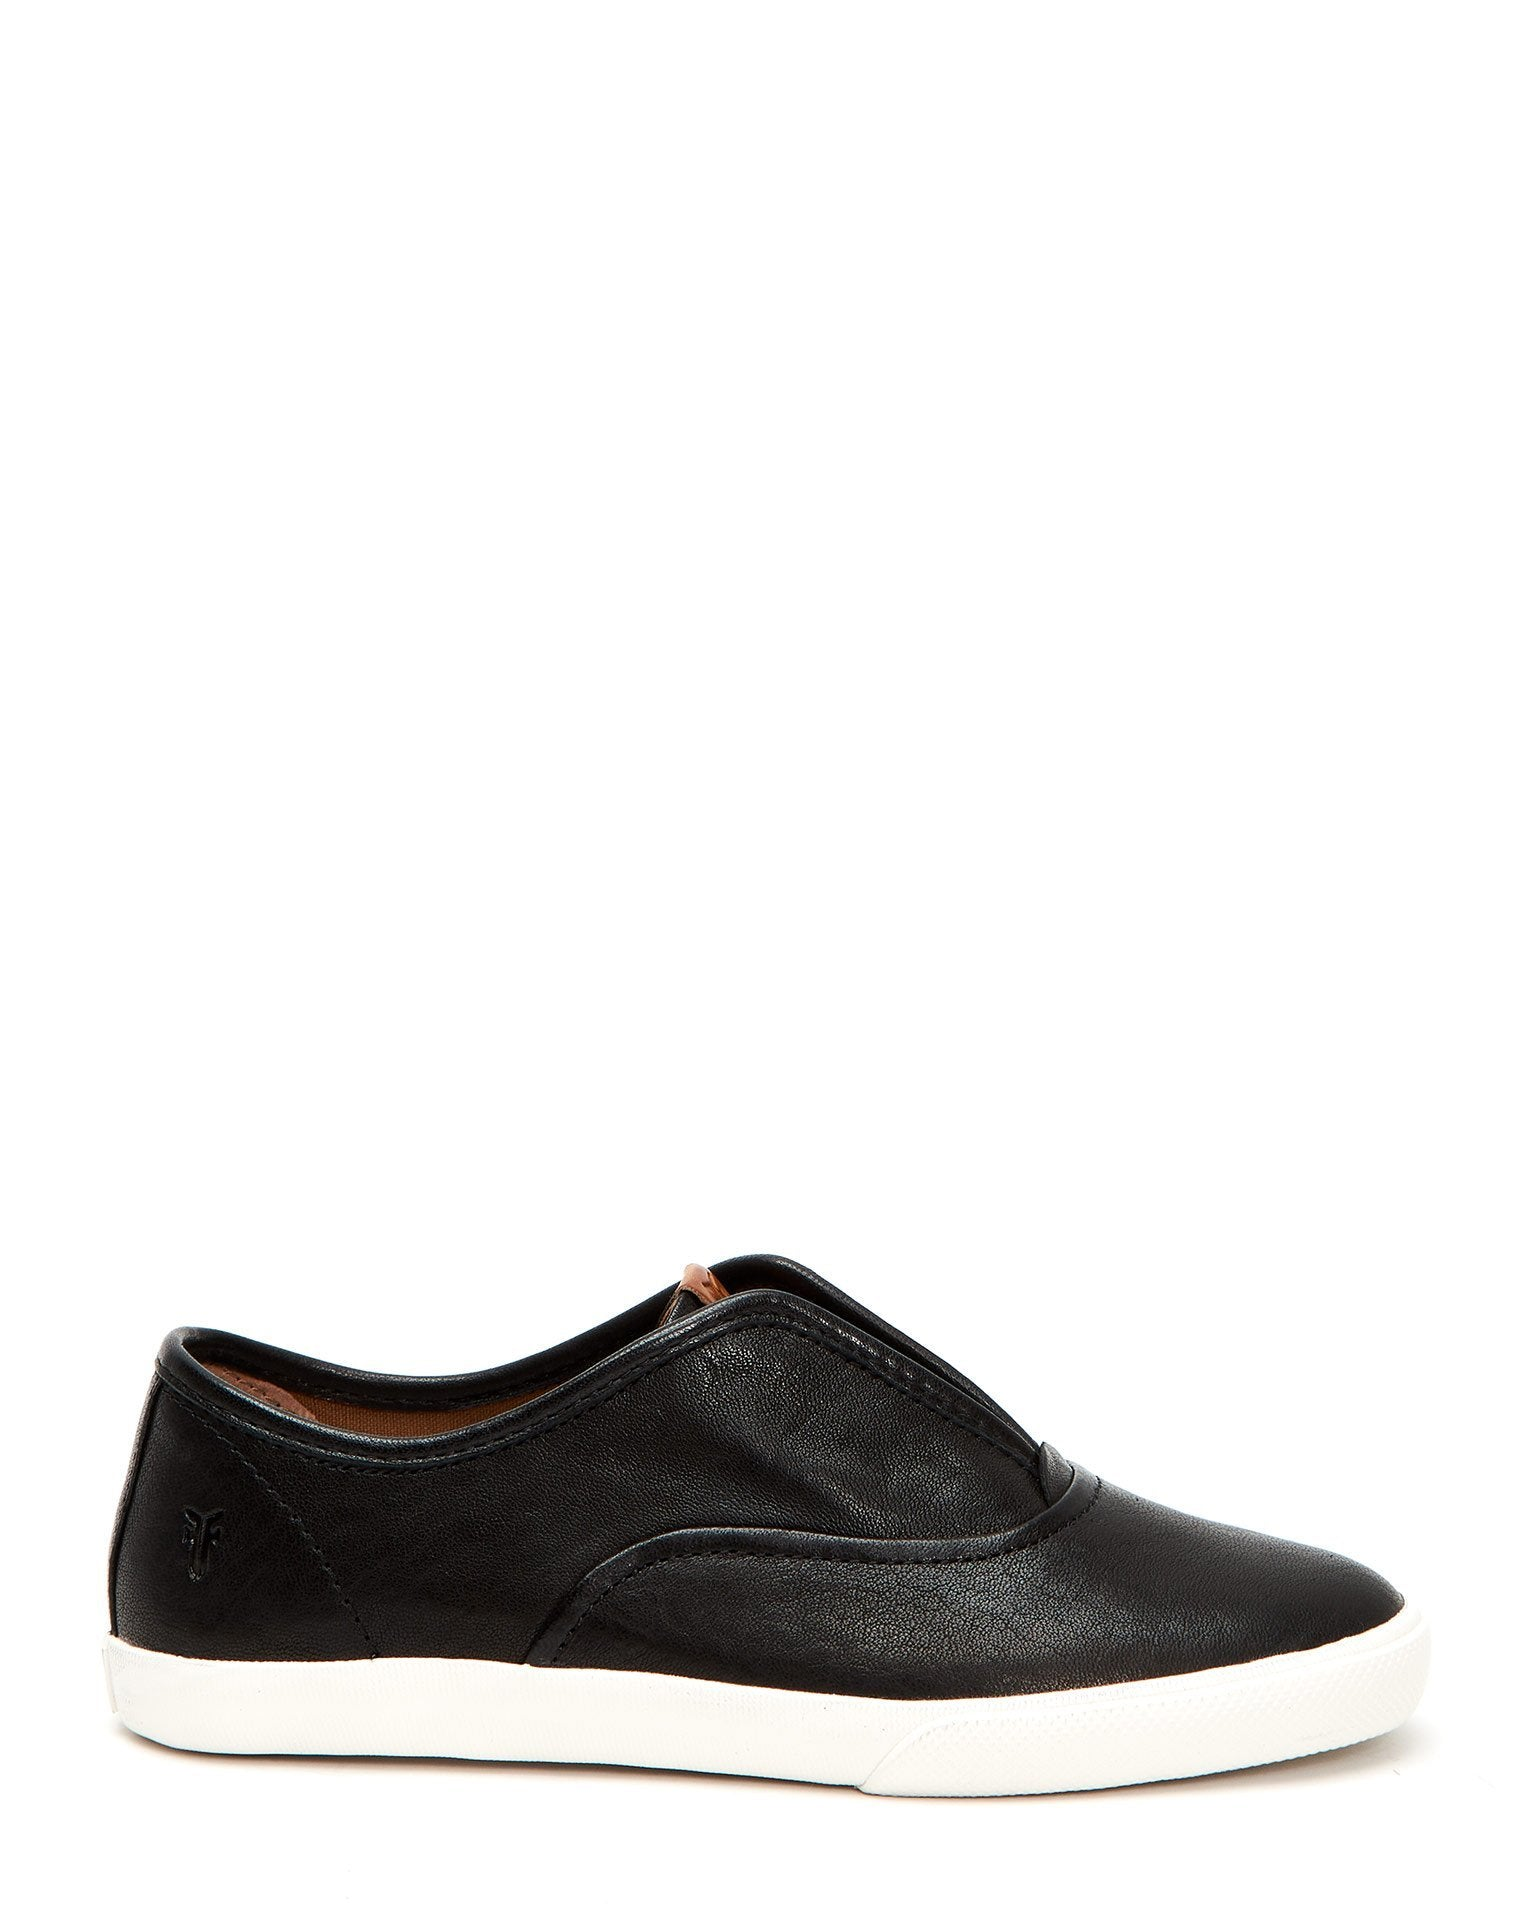 Frye Shoes Black / 6 Maya CVO Slip On